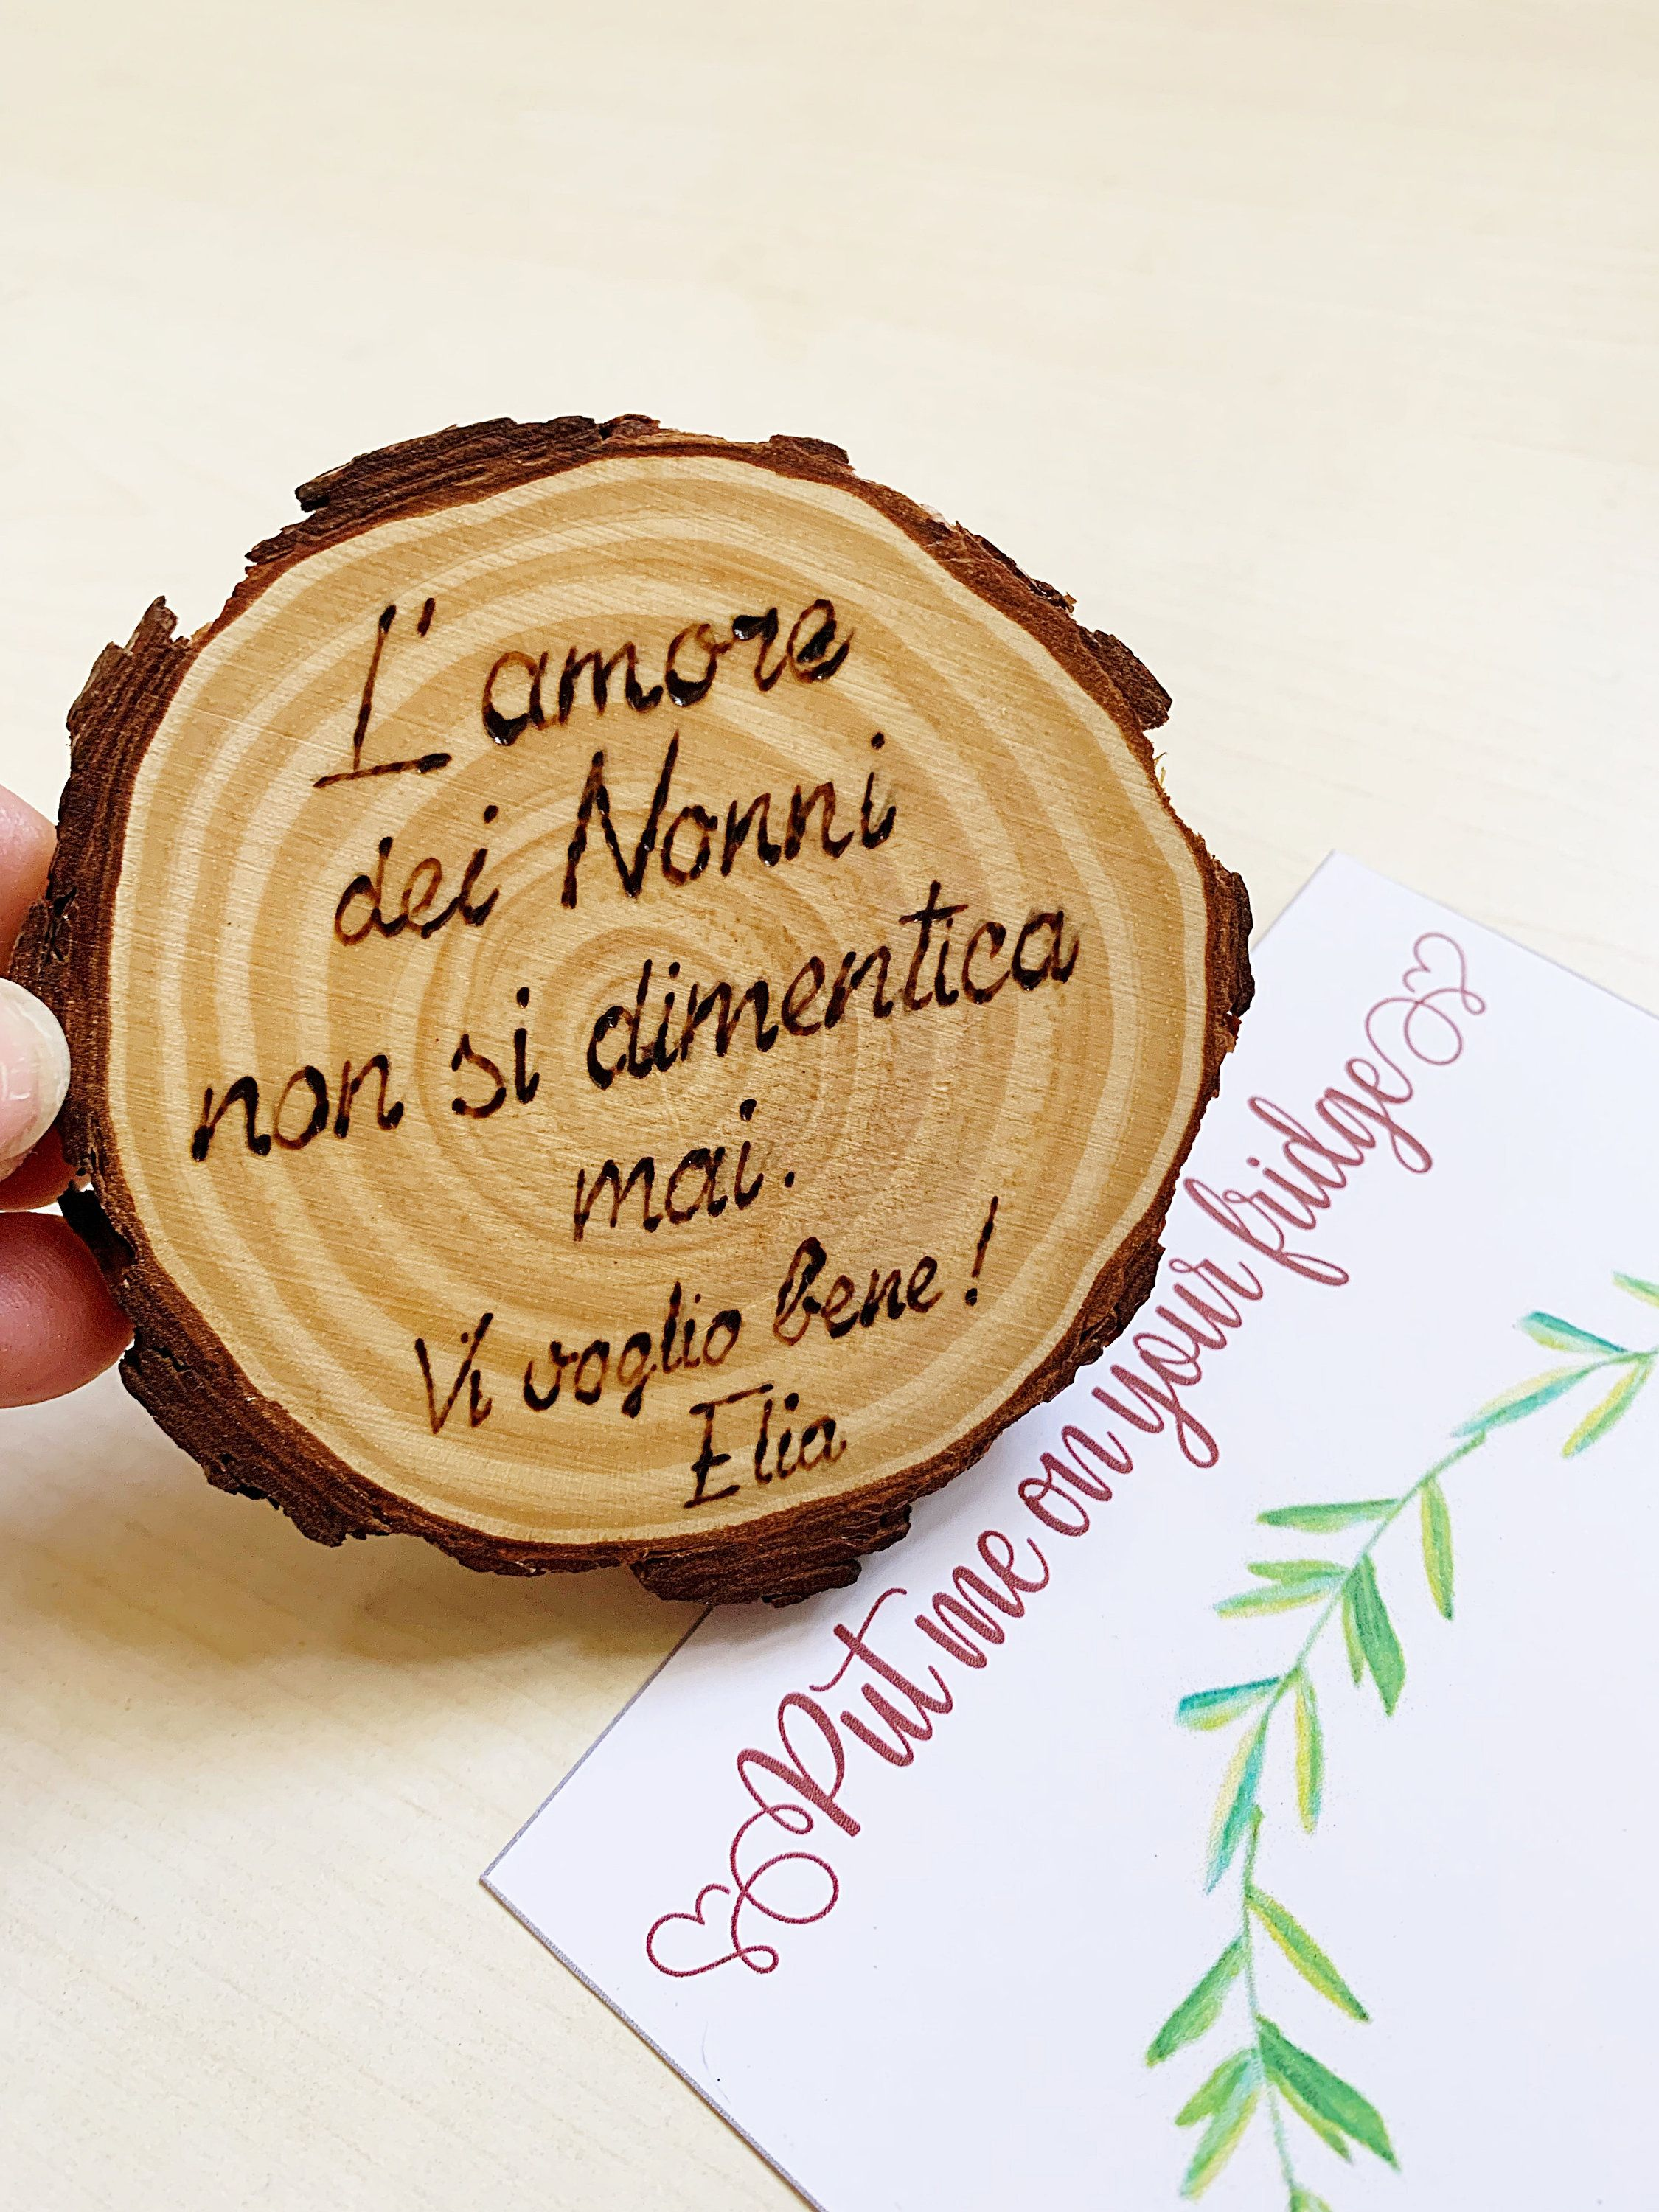 Grandparents Day Magnet, Wood Slice Card Gift, Unique Grandparent Gift, Personalized Magnet Gift, Wood Slice magnet